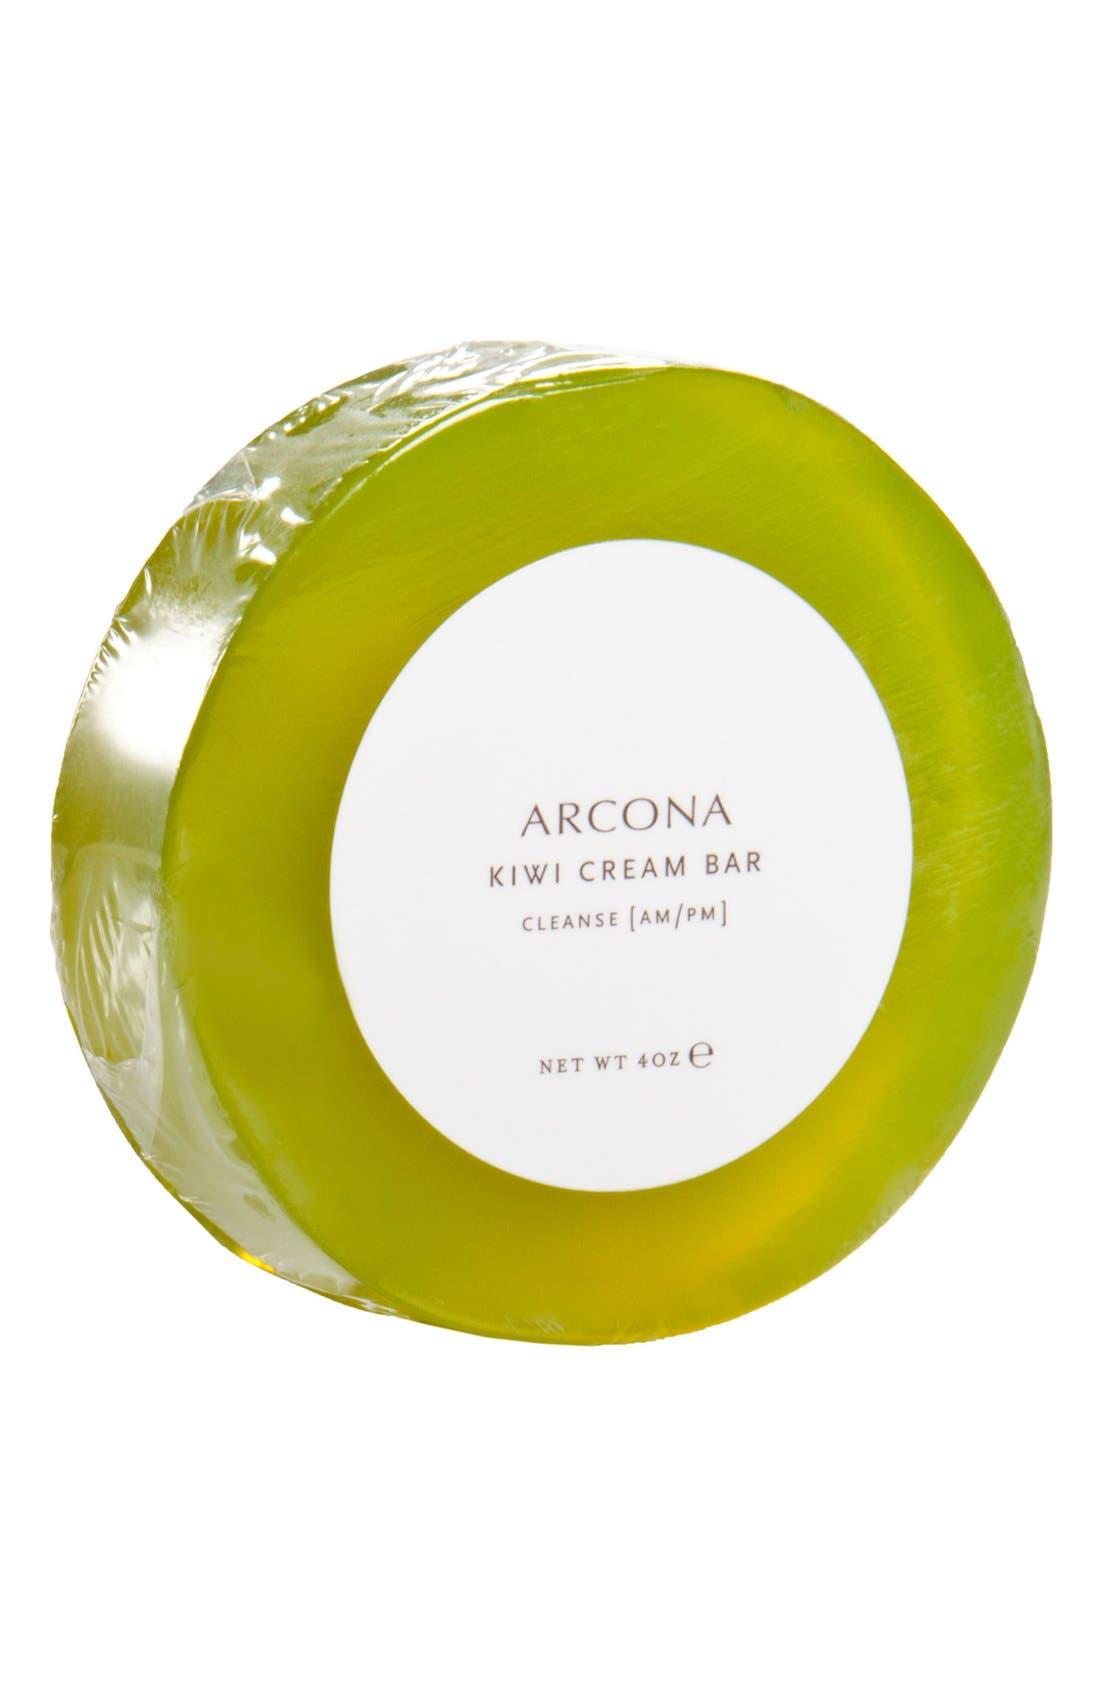 ARCONA Kiwi Cream Bar Facial Cleanser Refill